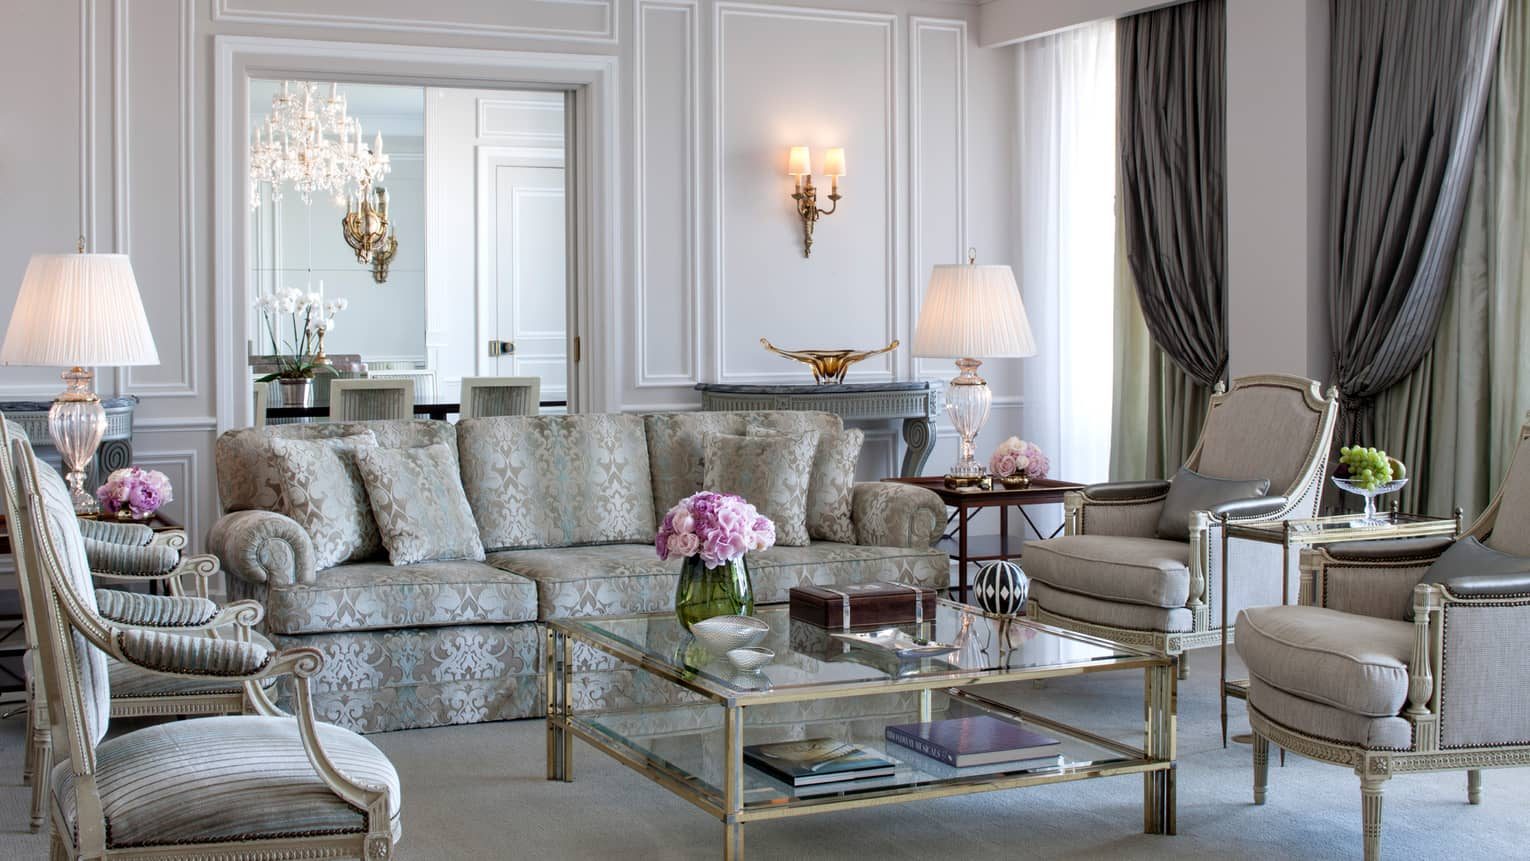 Royal Suite bright, elegant living room with blue-and-grey satin sofa, armchairs, glass coffee table with gold trim, white walls